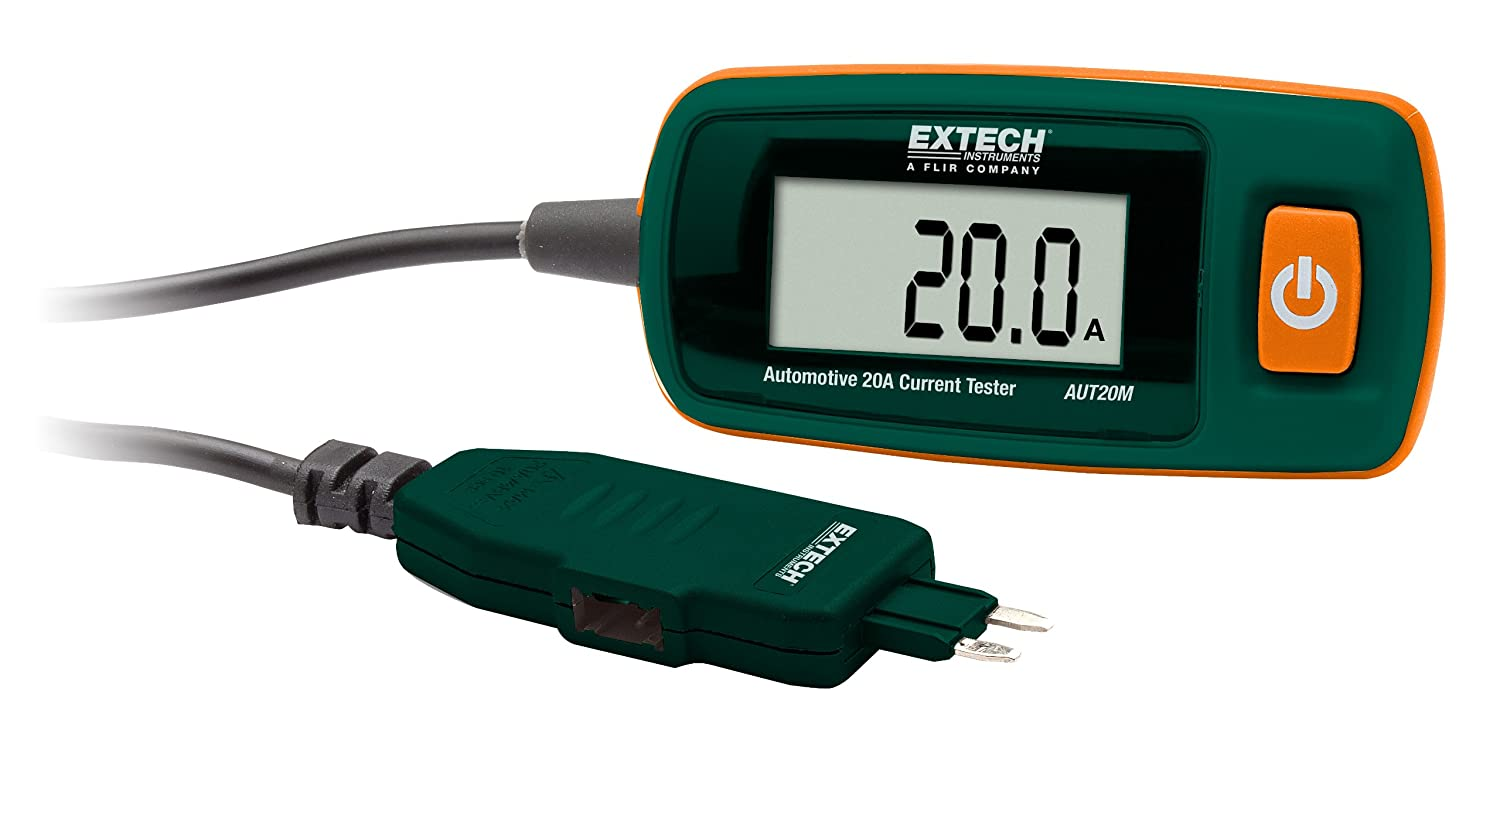 Extech AUT20M Automotive 20A Current Tester-Mini Fuse FLIR Systems